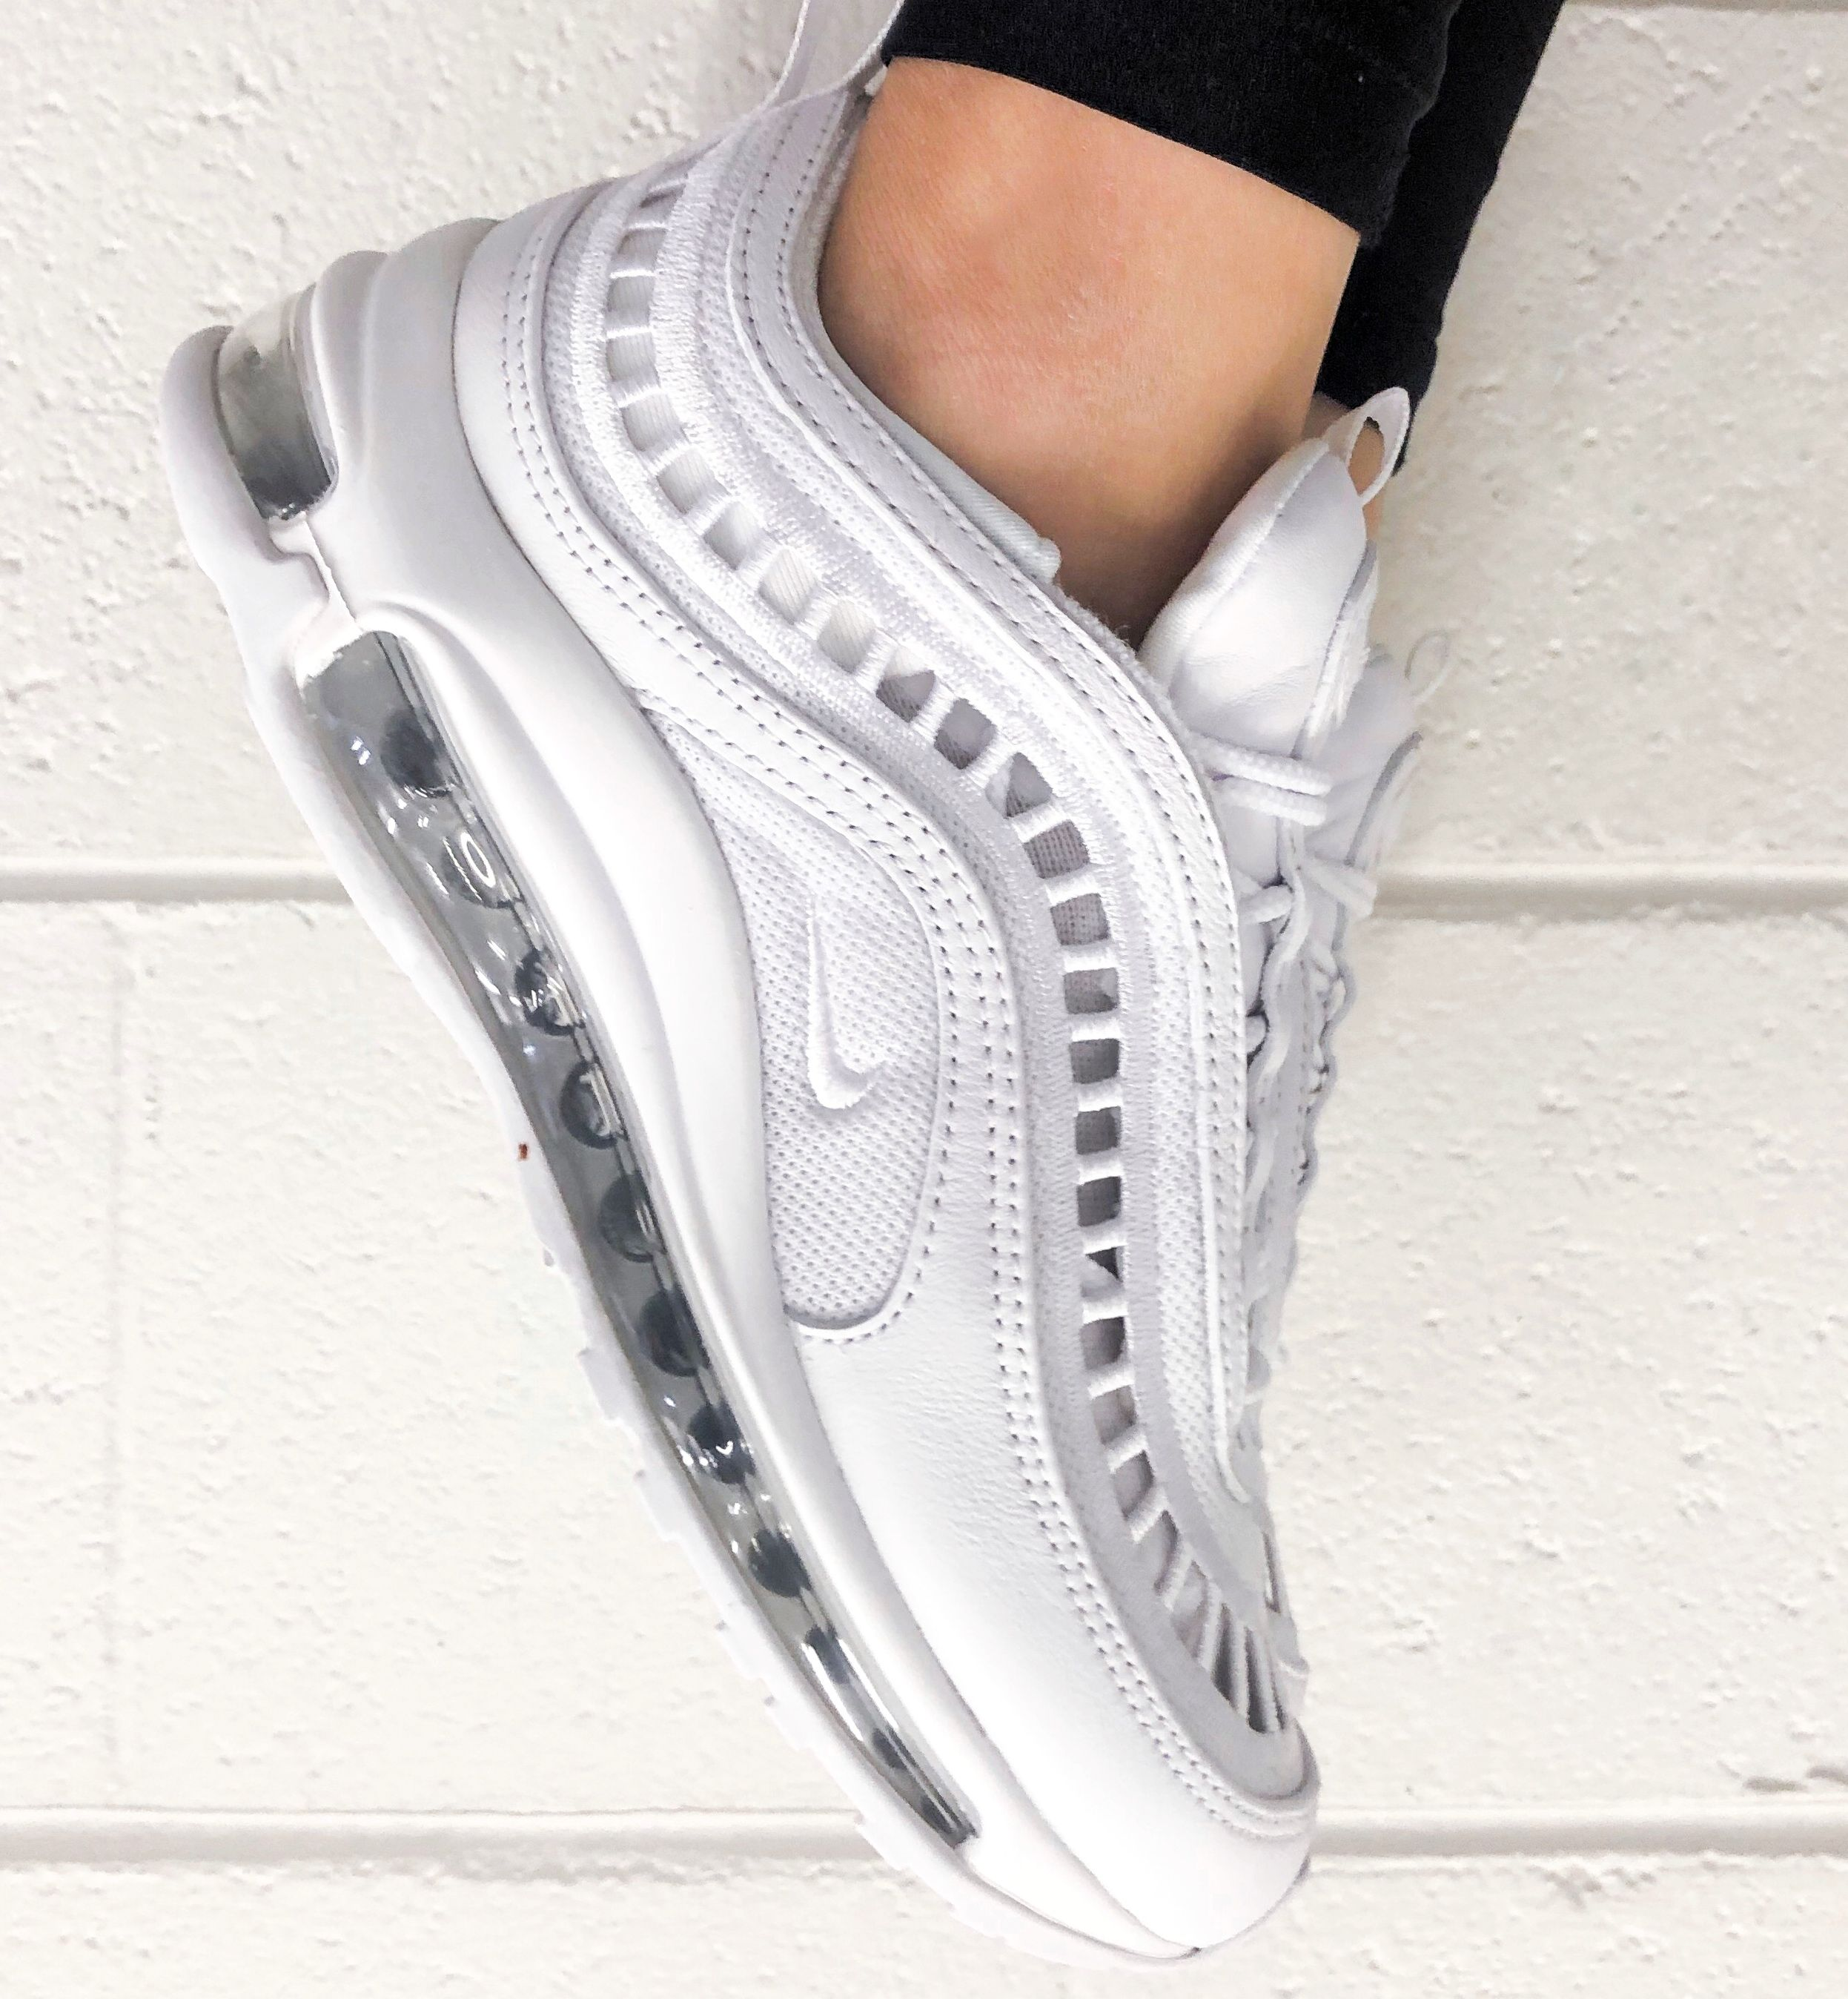 Pin by Stylerunner on Sneaker Love | Air max sneakers, Air